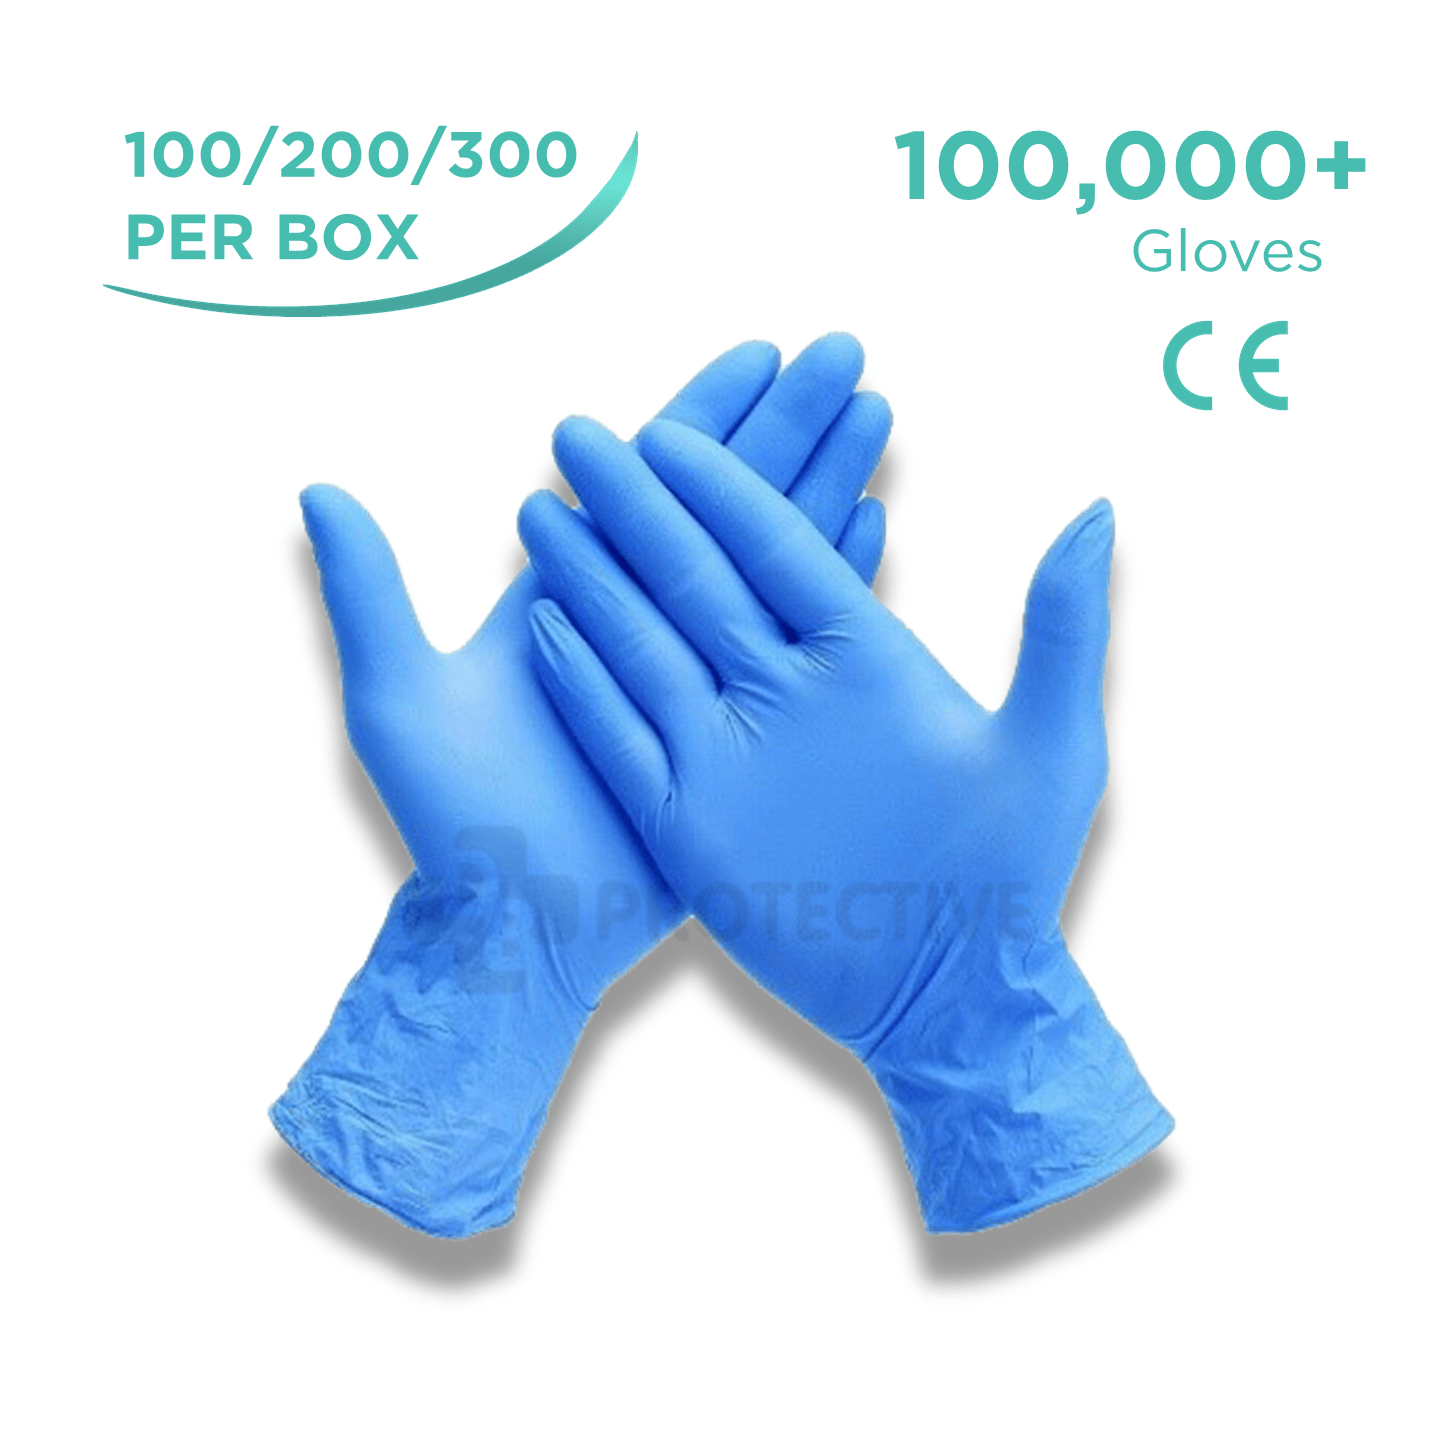 Blue Nitrile Gloves - Pack of 100,000 - USA Medical Supply - DB Protective